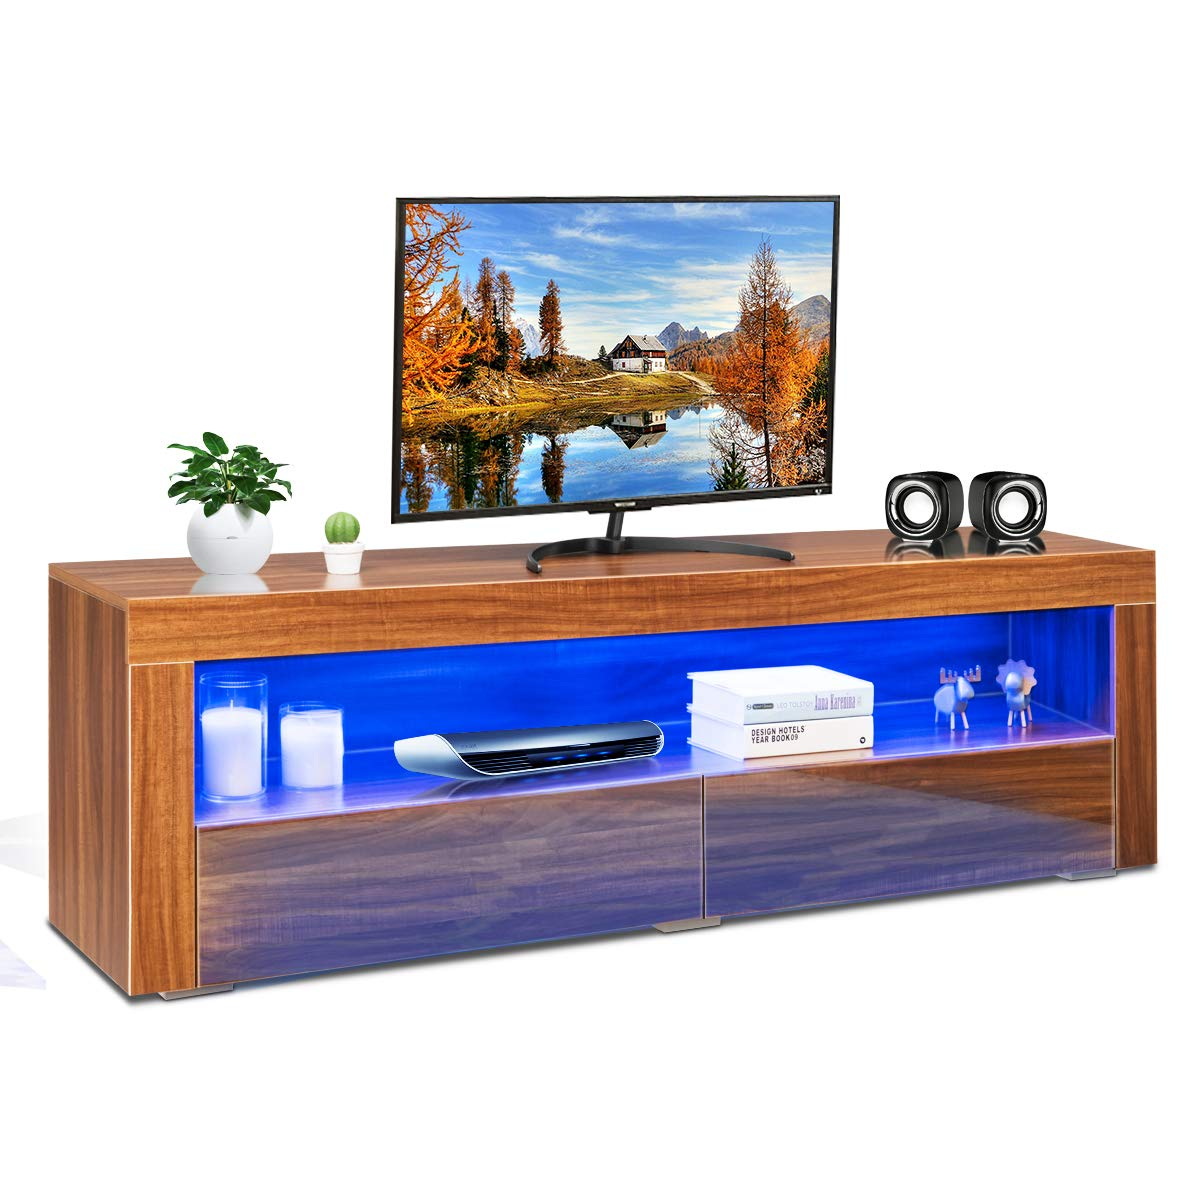 Tangkula Modern TV Stand with LED Lights, High Gloss Media Console Storage Cabinet, TV Cabinet with an Open Shelf and 2 Drawers, TV Console Storage Cabinet with Remote Control, Coffee by Tangkula